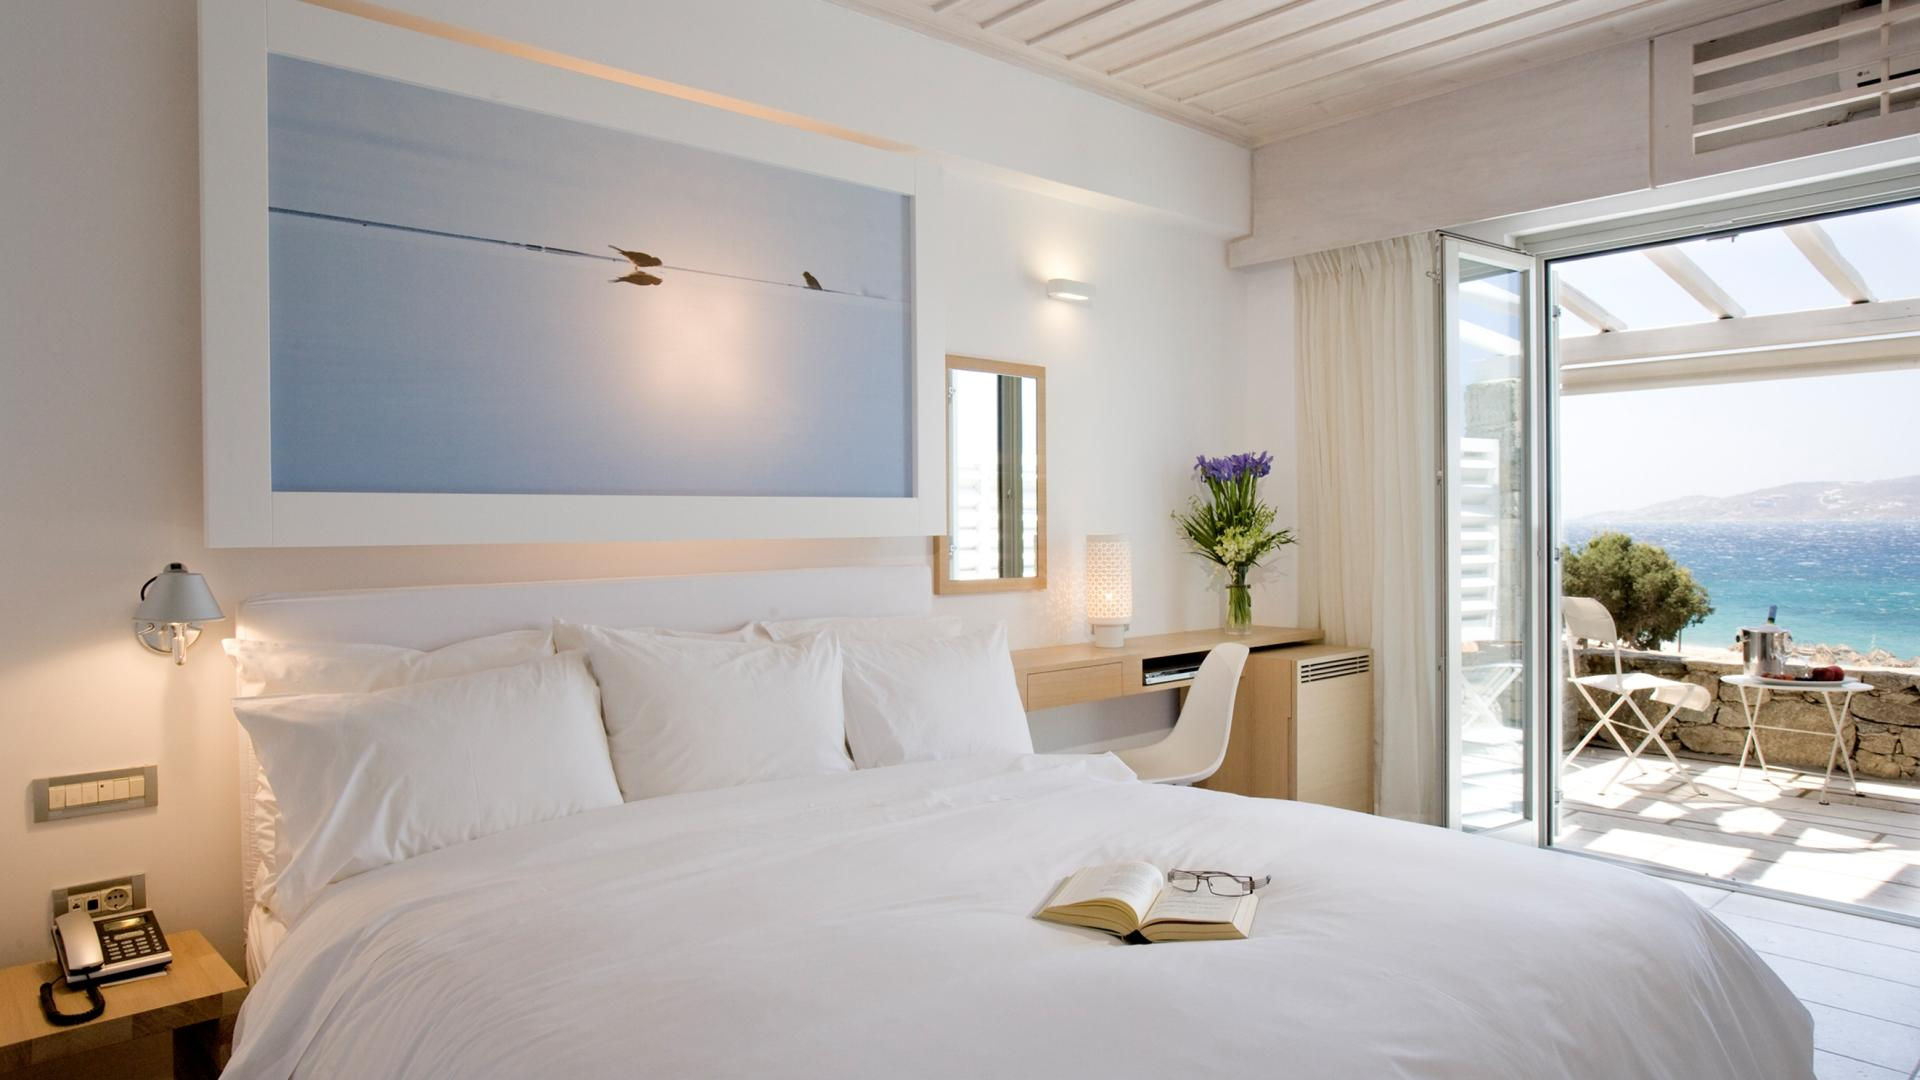 Grace_Mykonos_Deluxe_Room